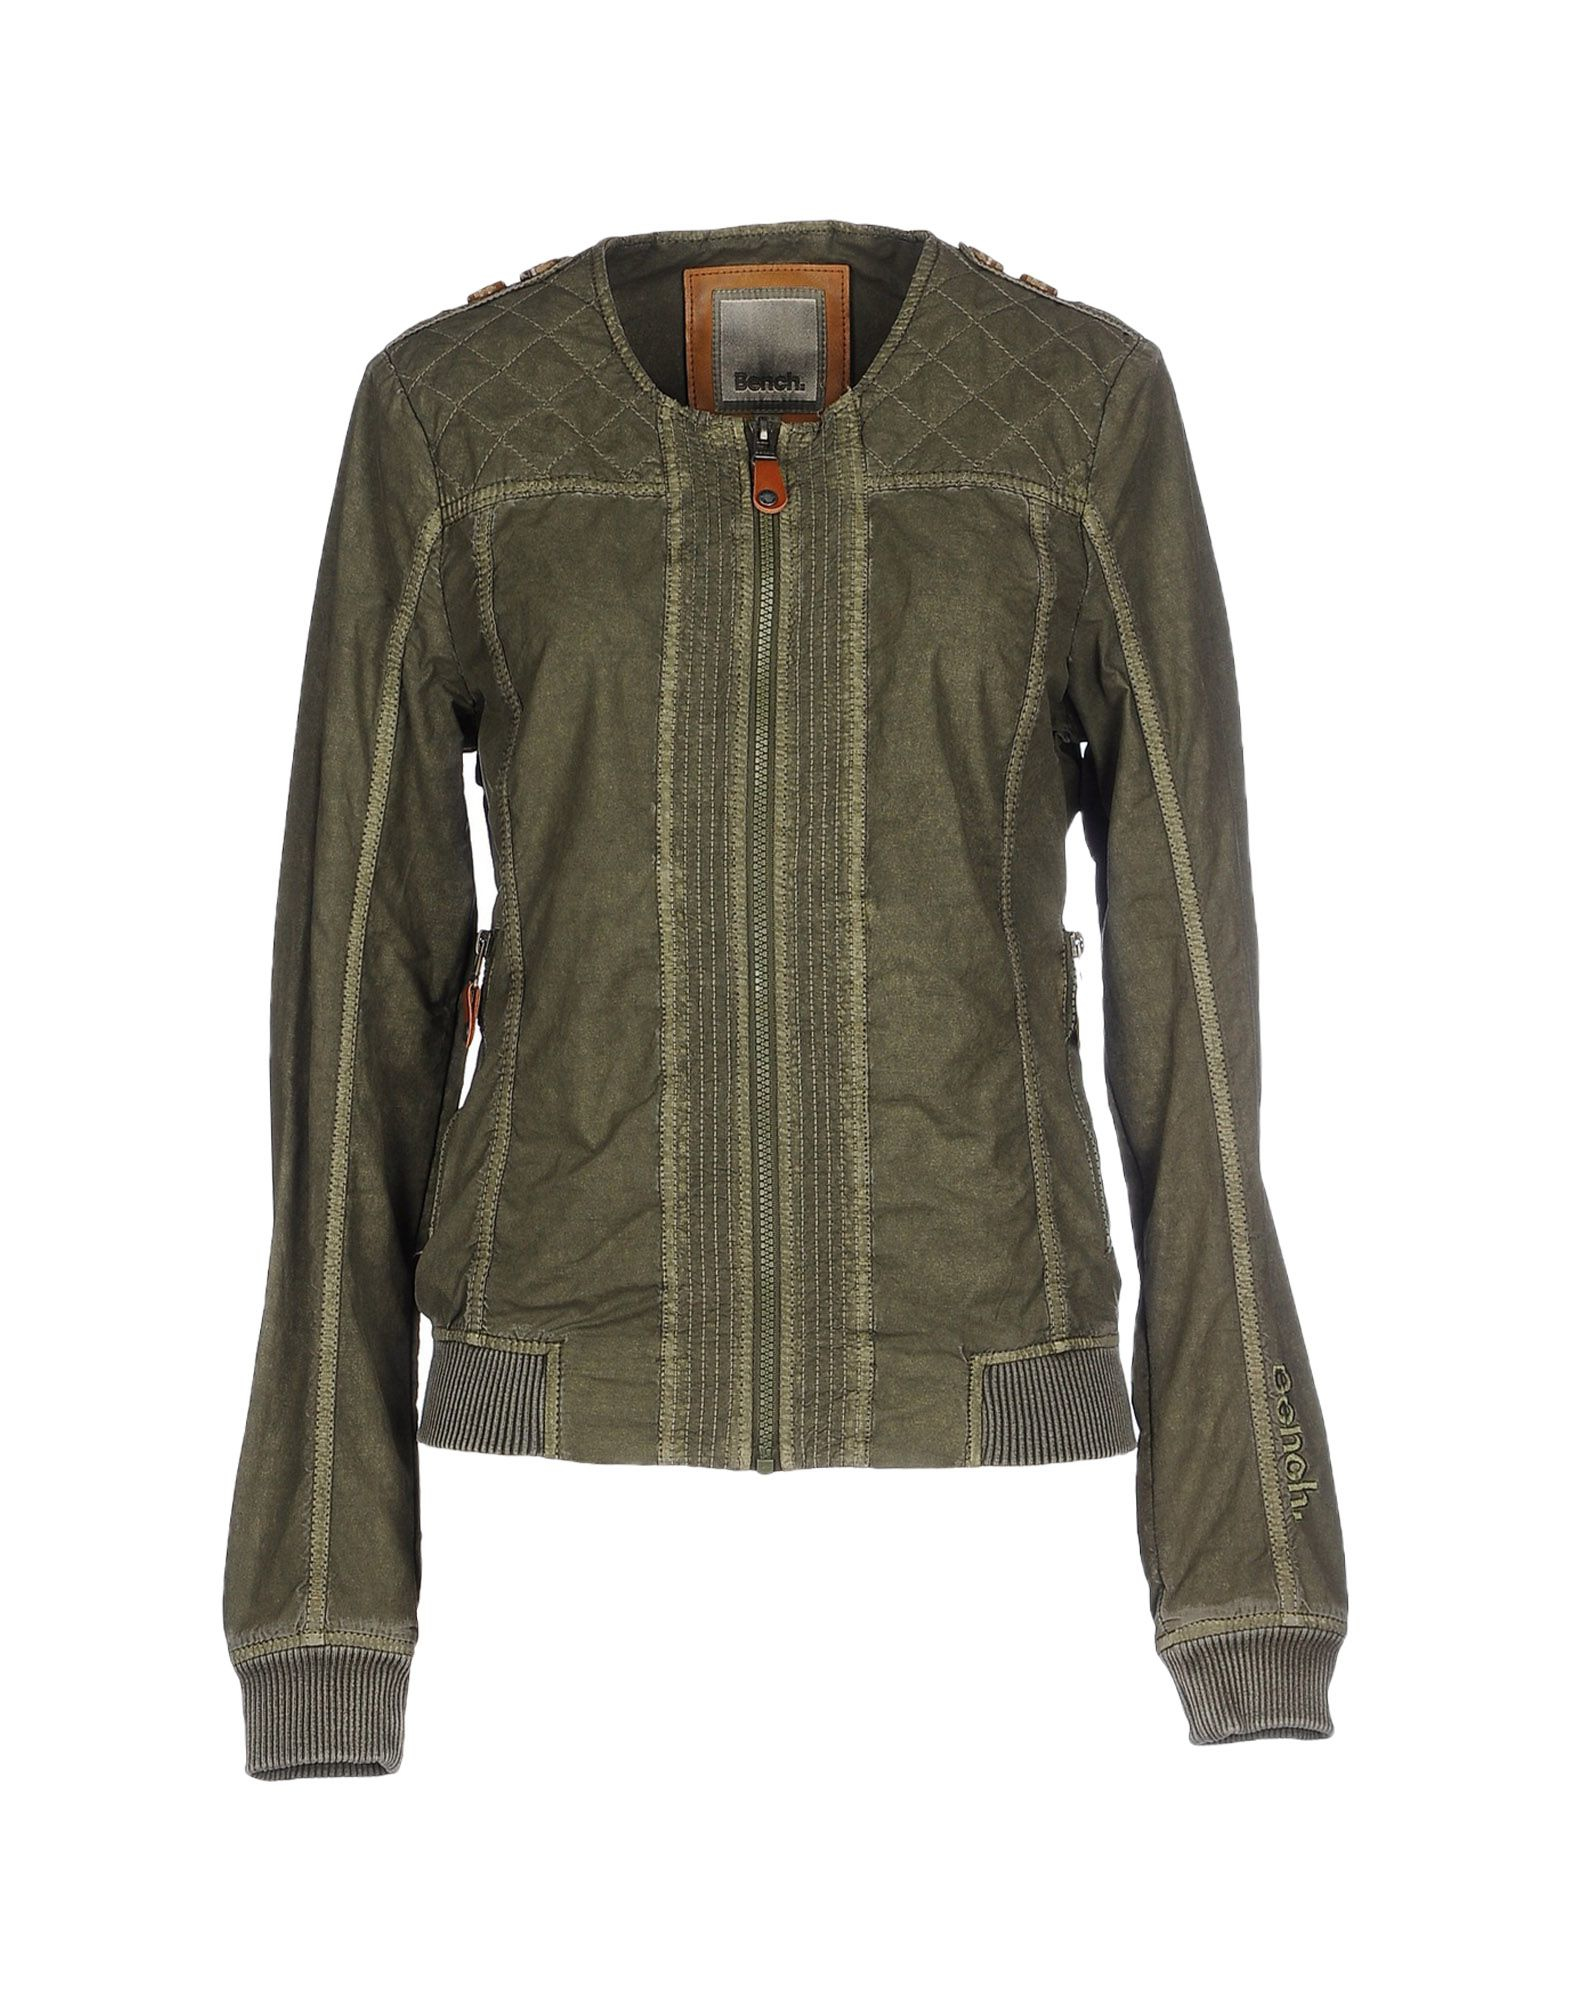 Bench jacket in green lyst Bench jacket